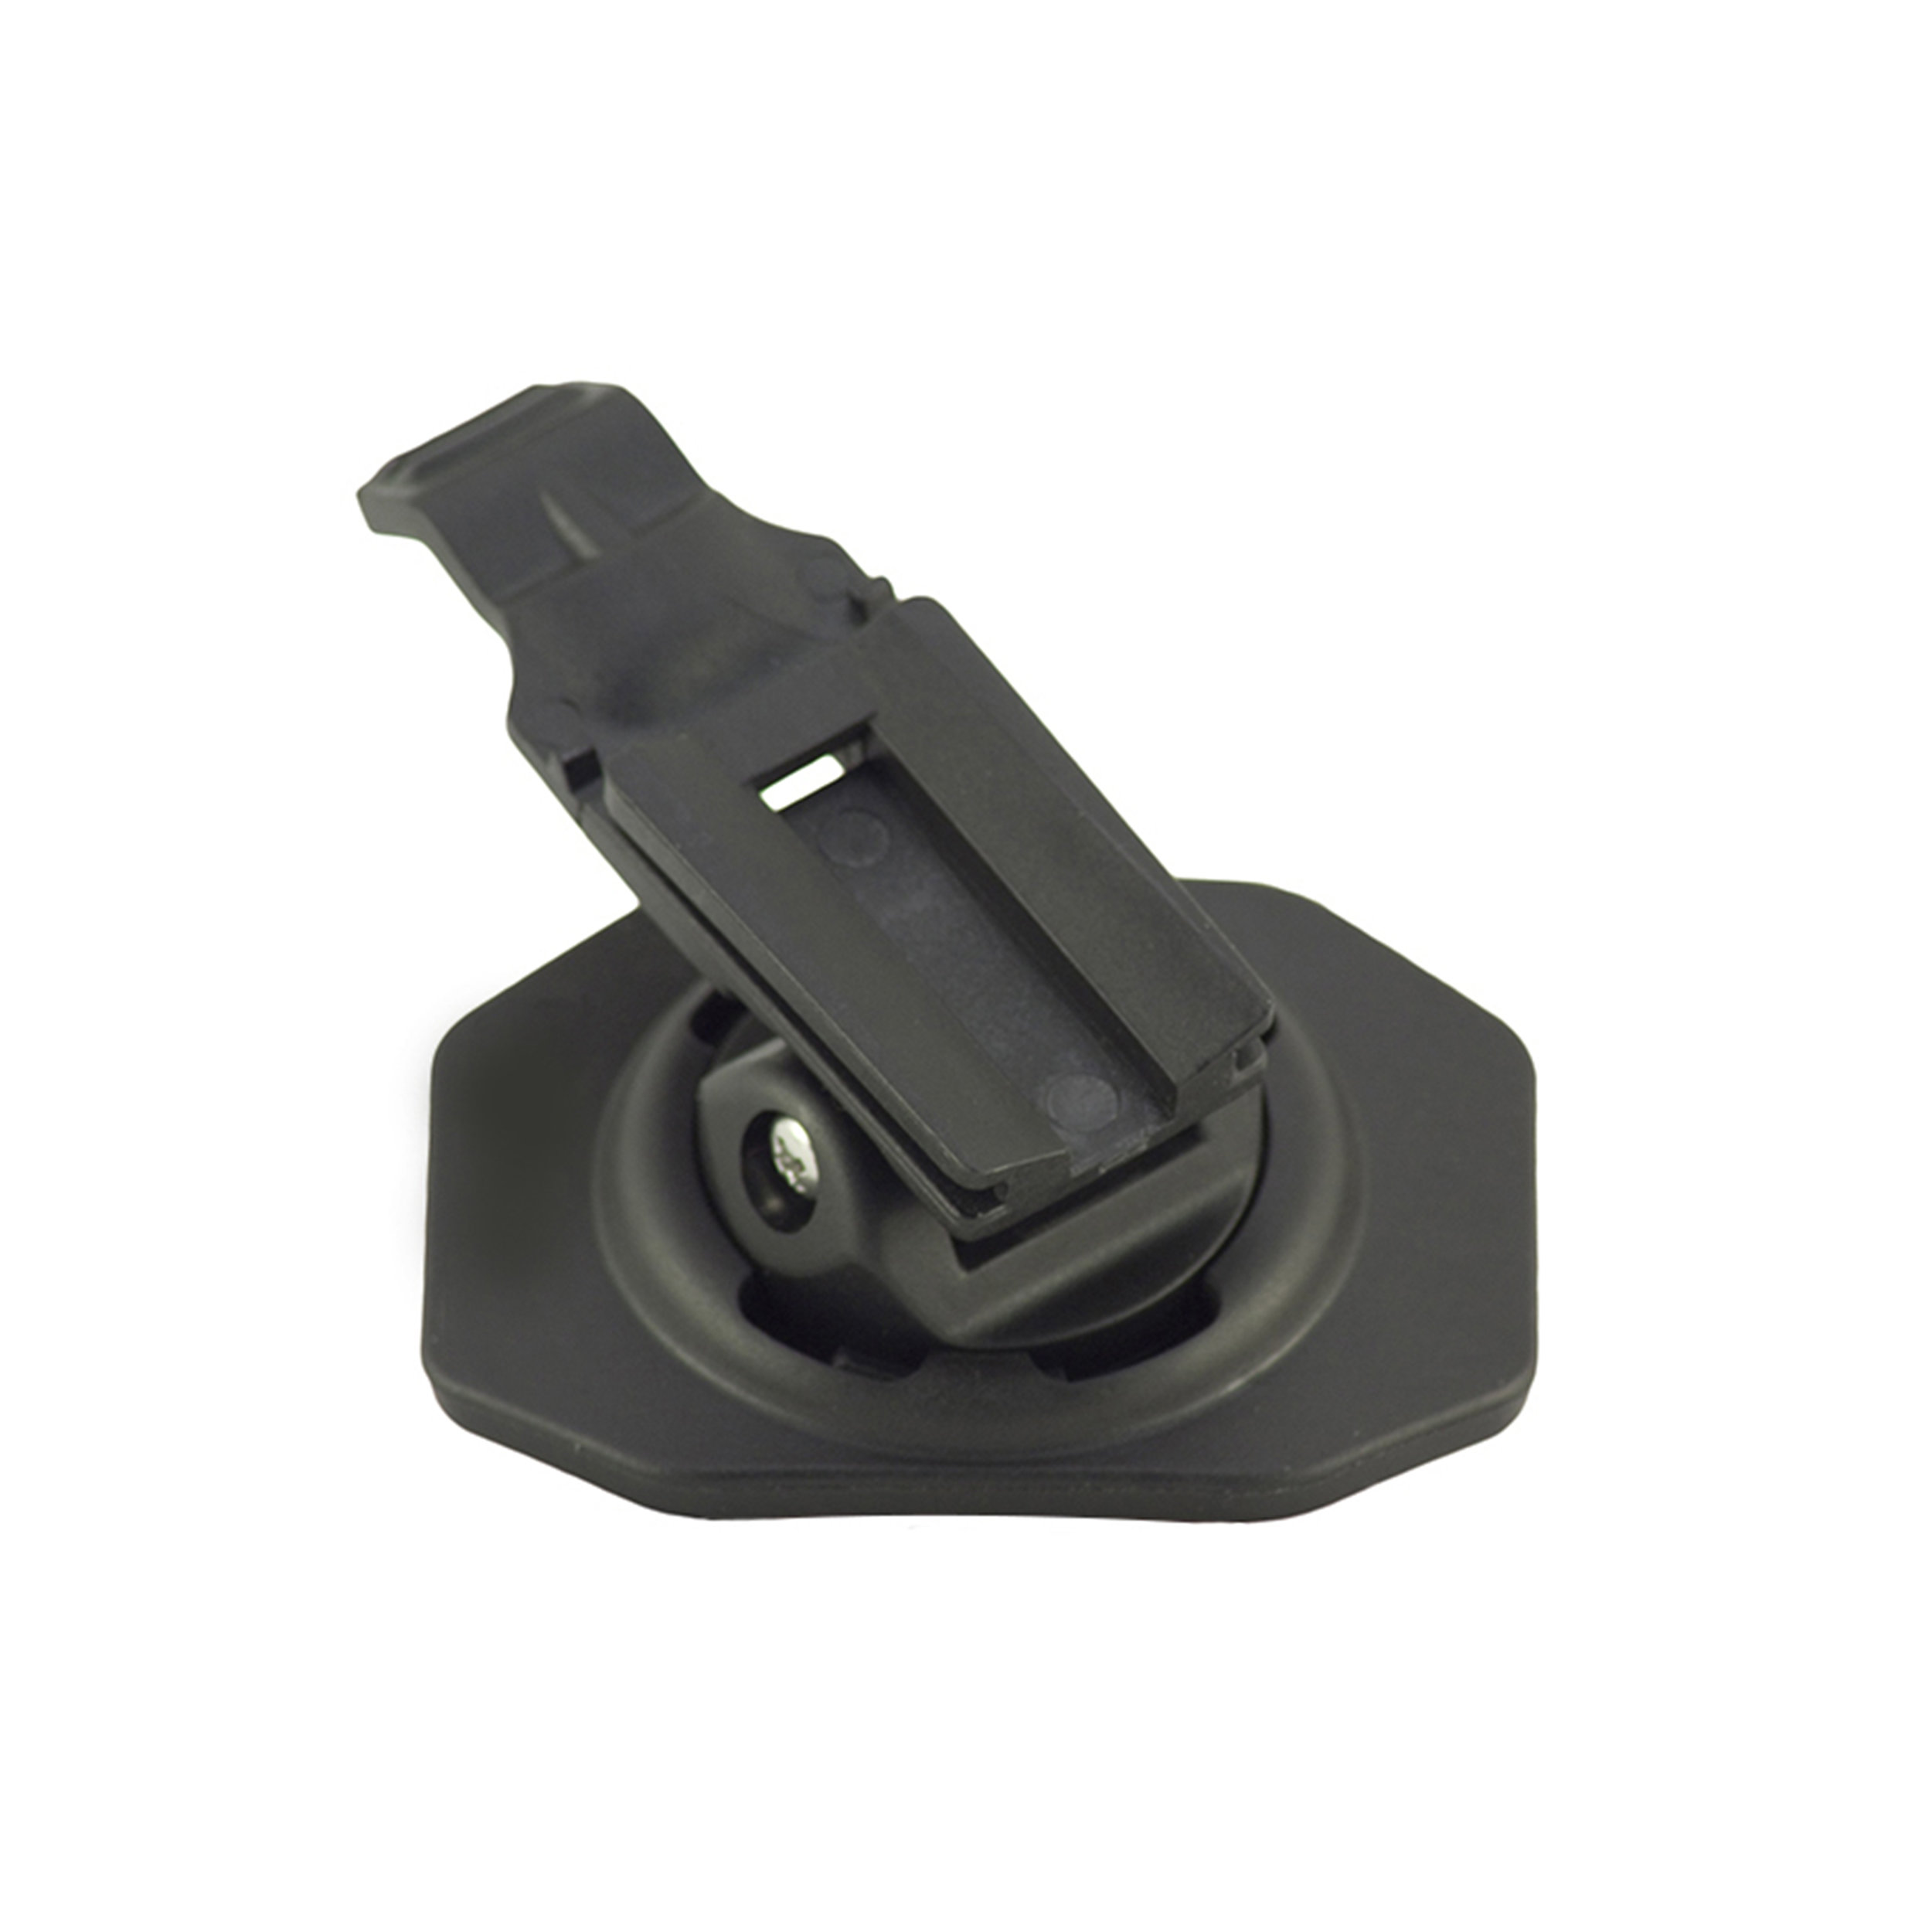 Lumina Stick-On Mount - SGD $20 | Specifications here